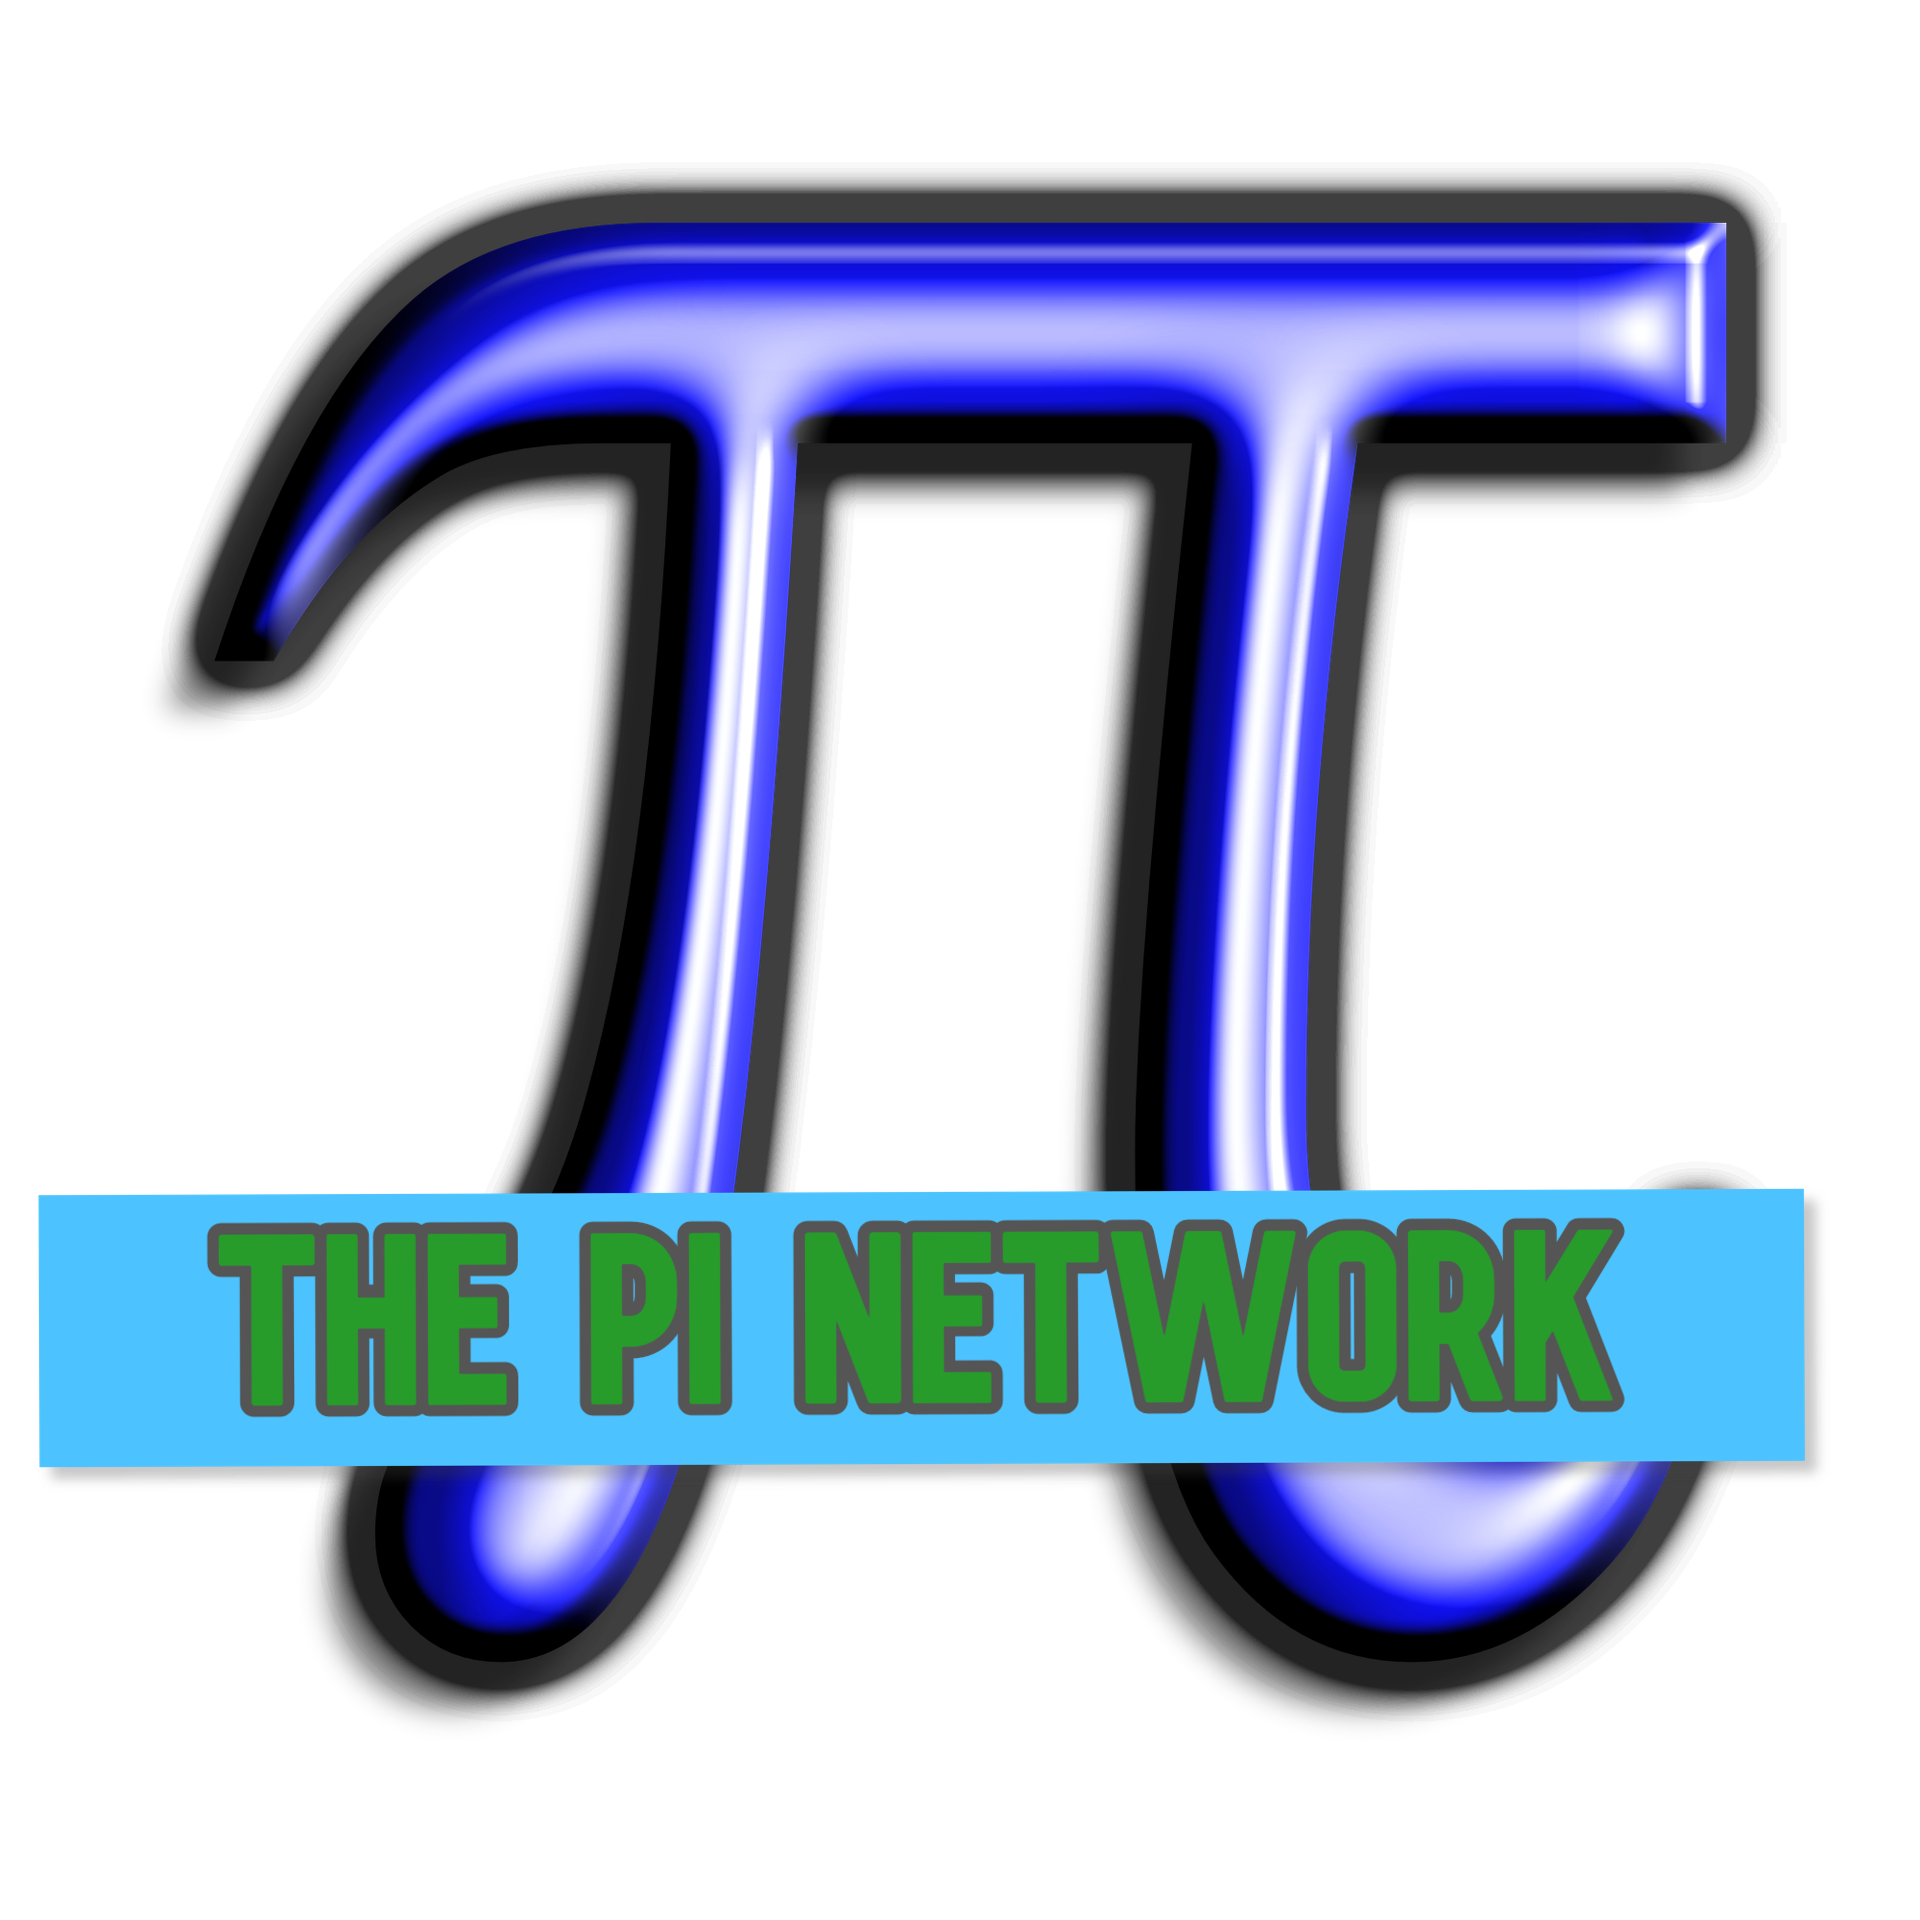 The Pi Network - Upcoming Cryptocurrency of 2021